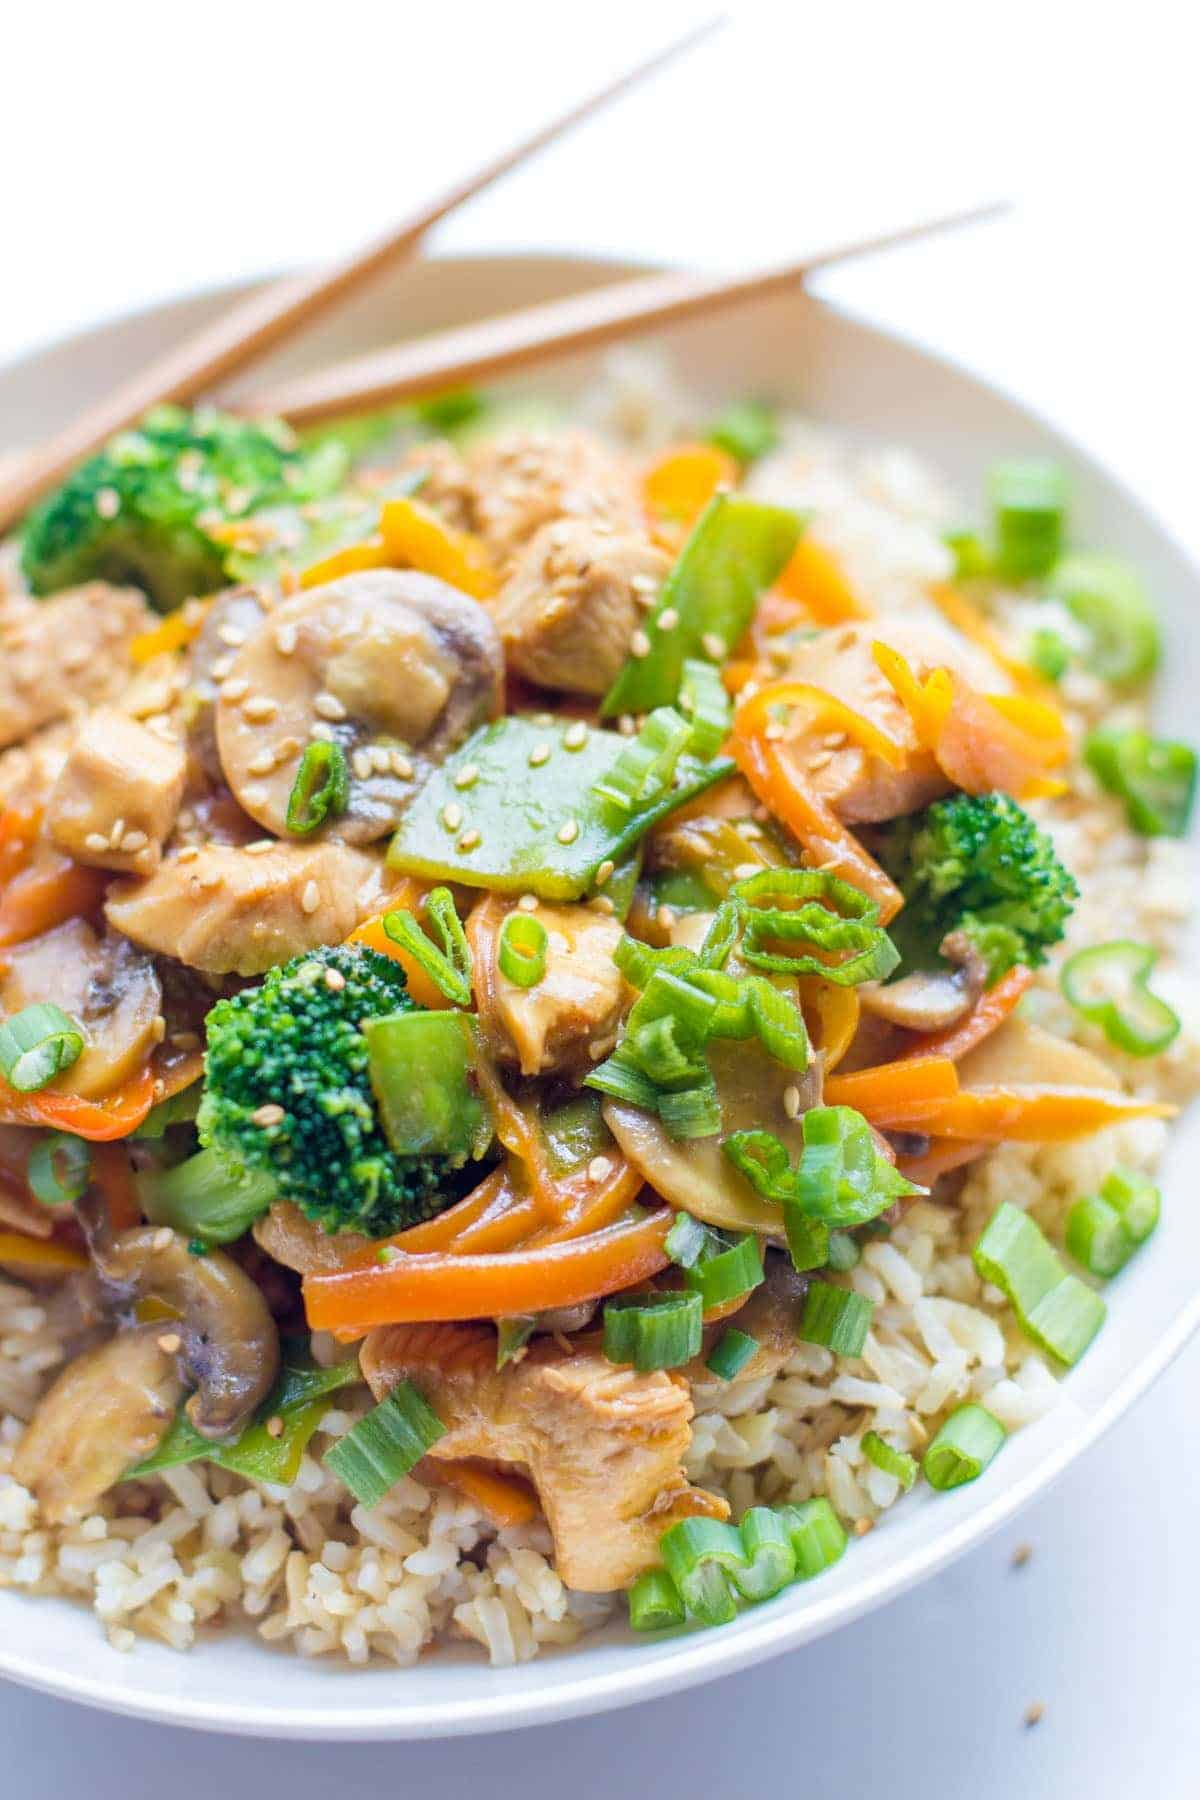 A close up shot of Healthy Chicken Stir Fry in a bowl.